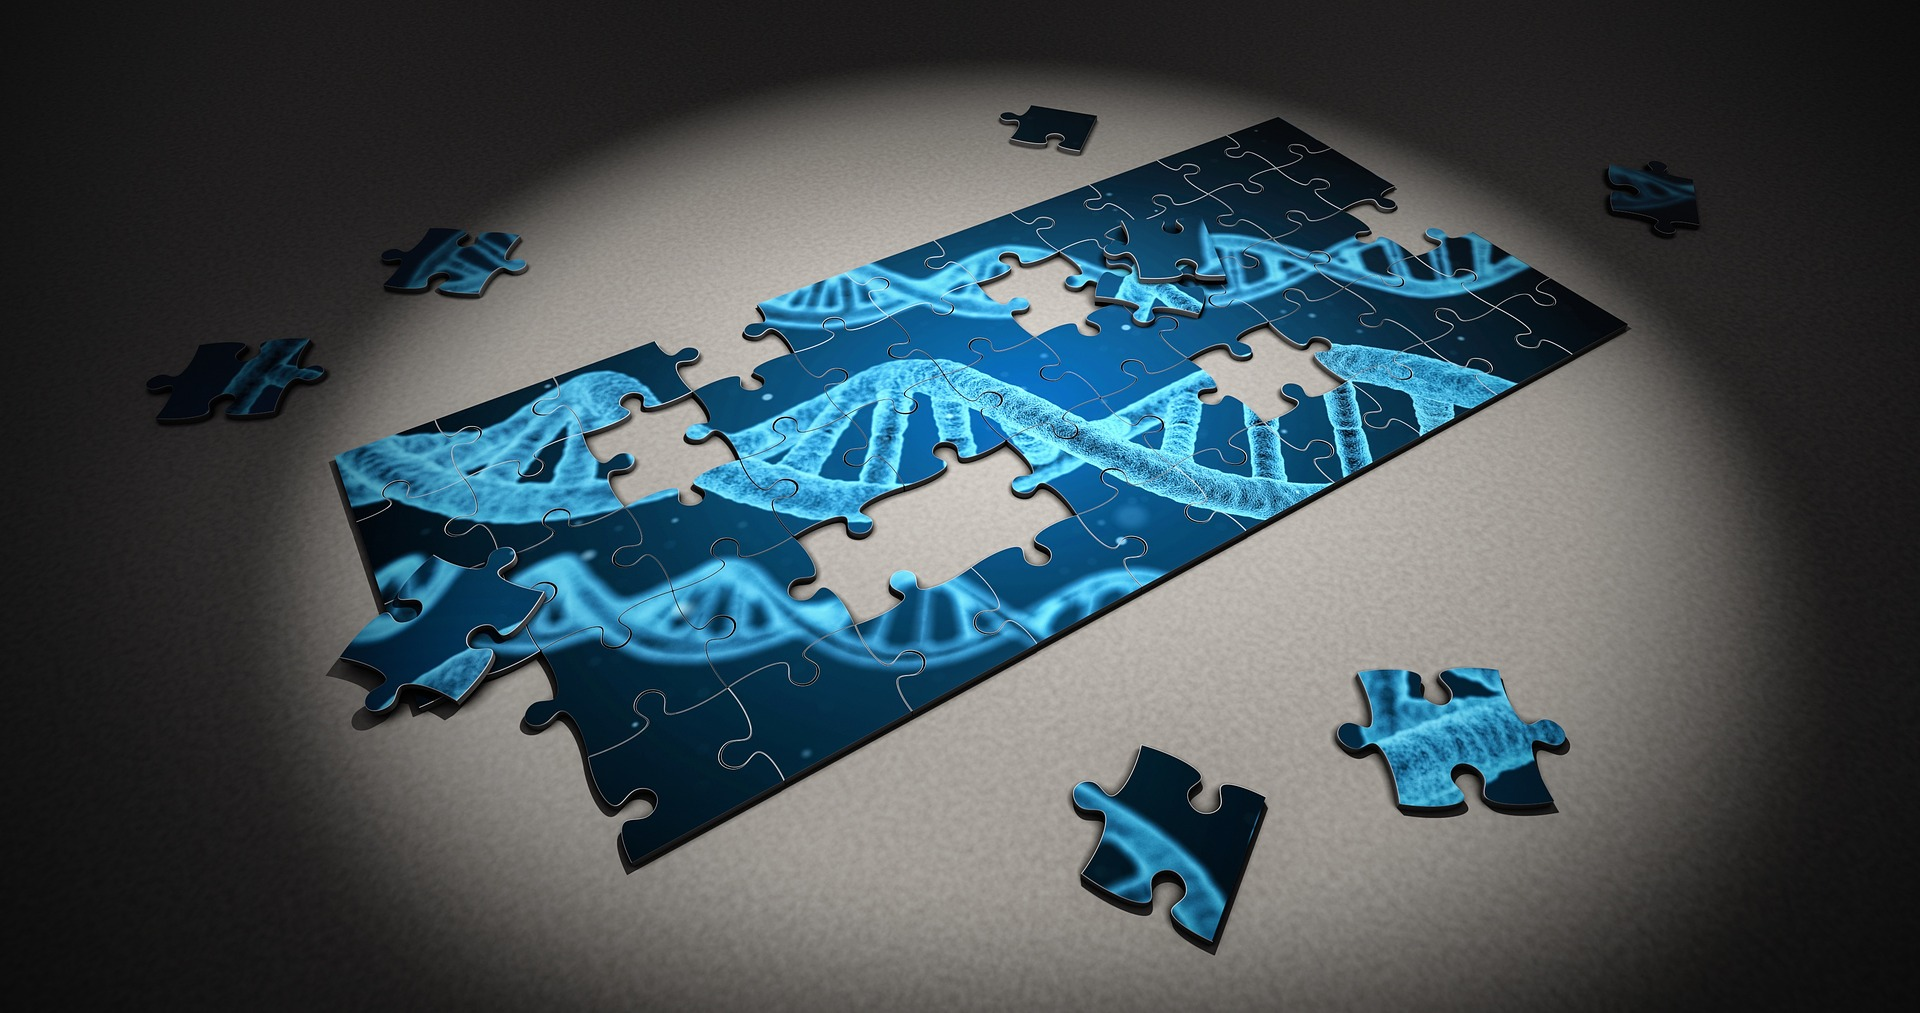 23andMe a Missing Link? - Will their new reports enable pharmacists to talk pharmacogenetics with their patients?